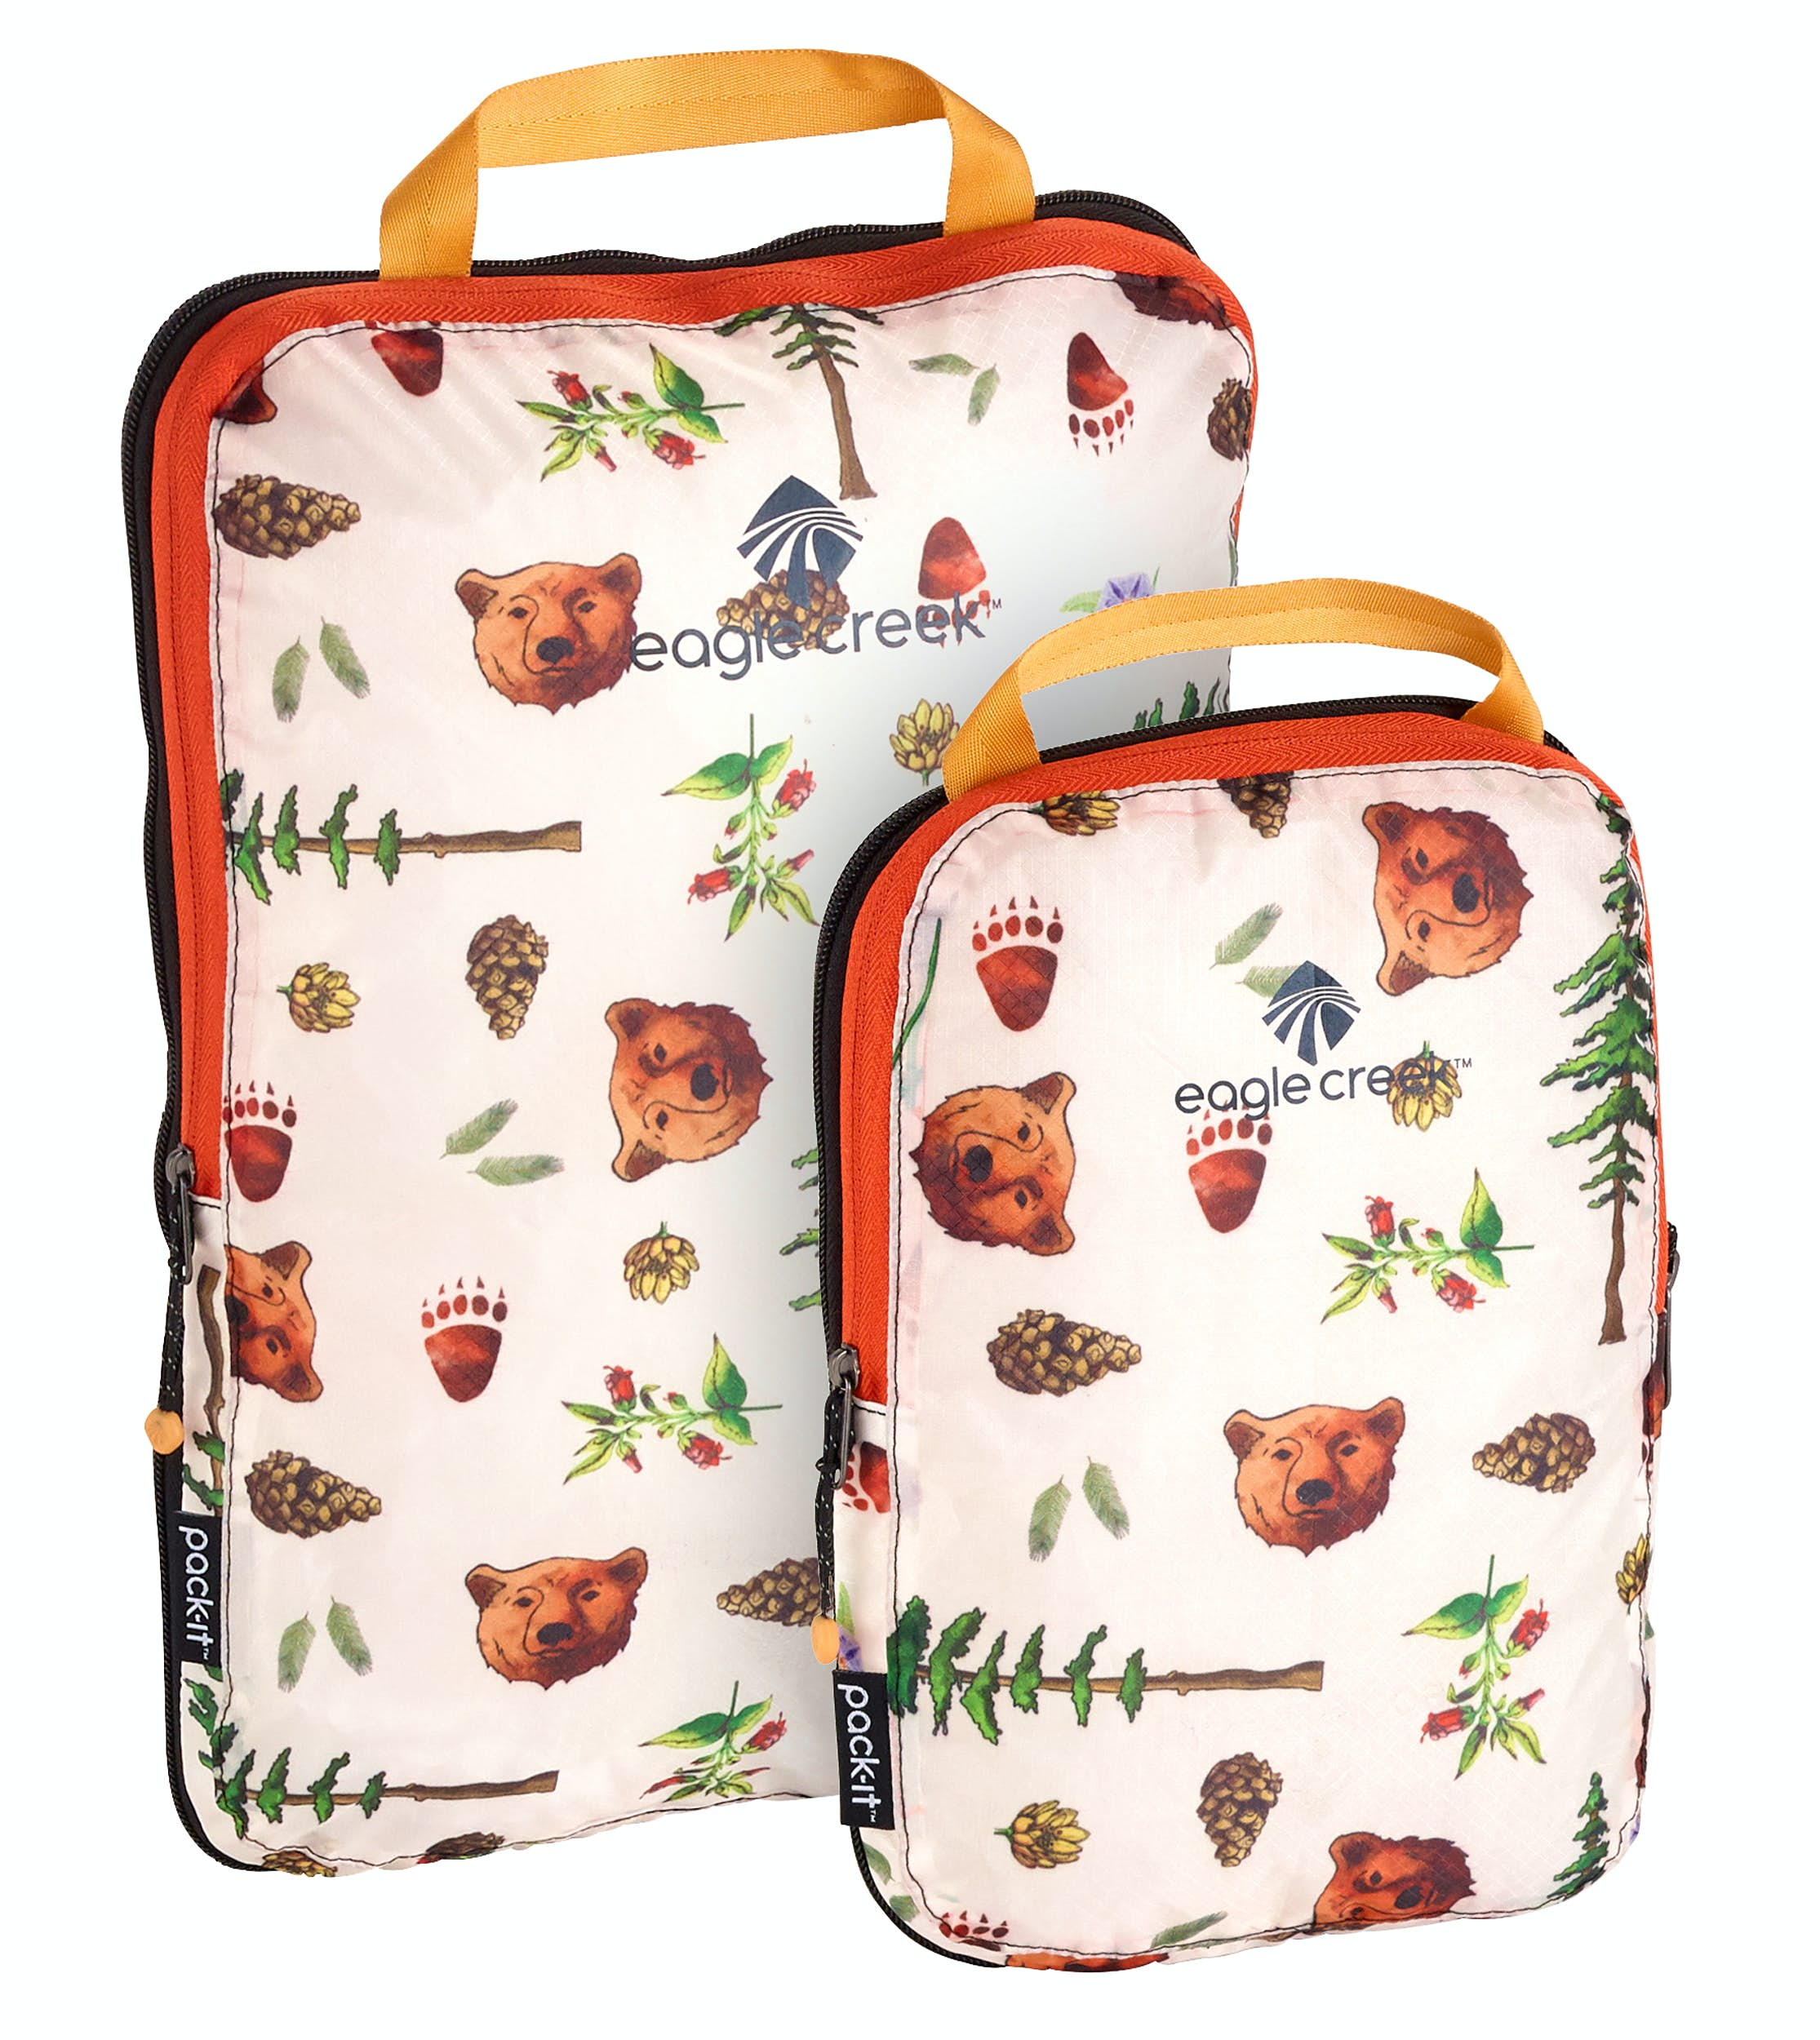 10 holiday decorating ideas for your office cubicle.htm how packing cubes can improve your travel experience lonely planet  packing cubes can improve your travel